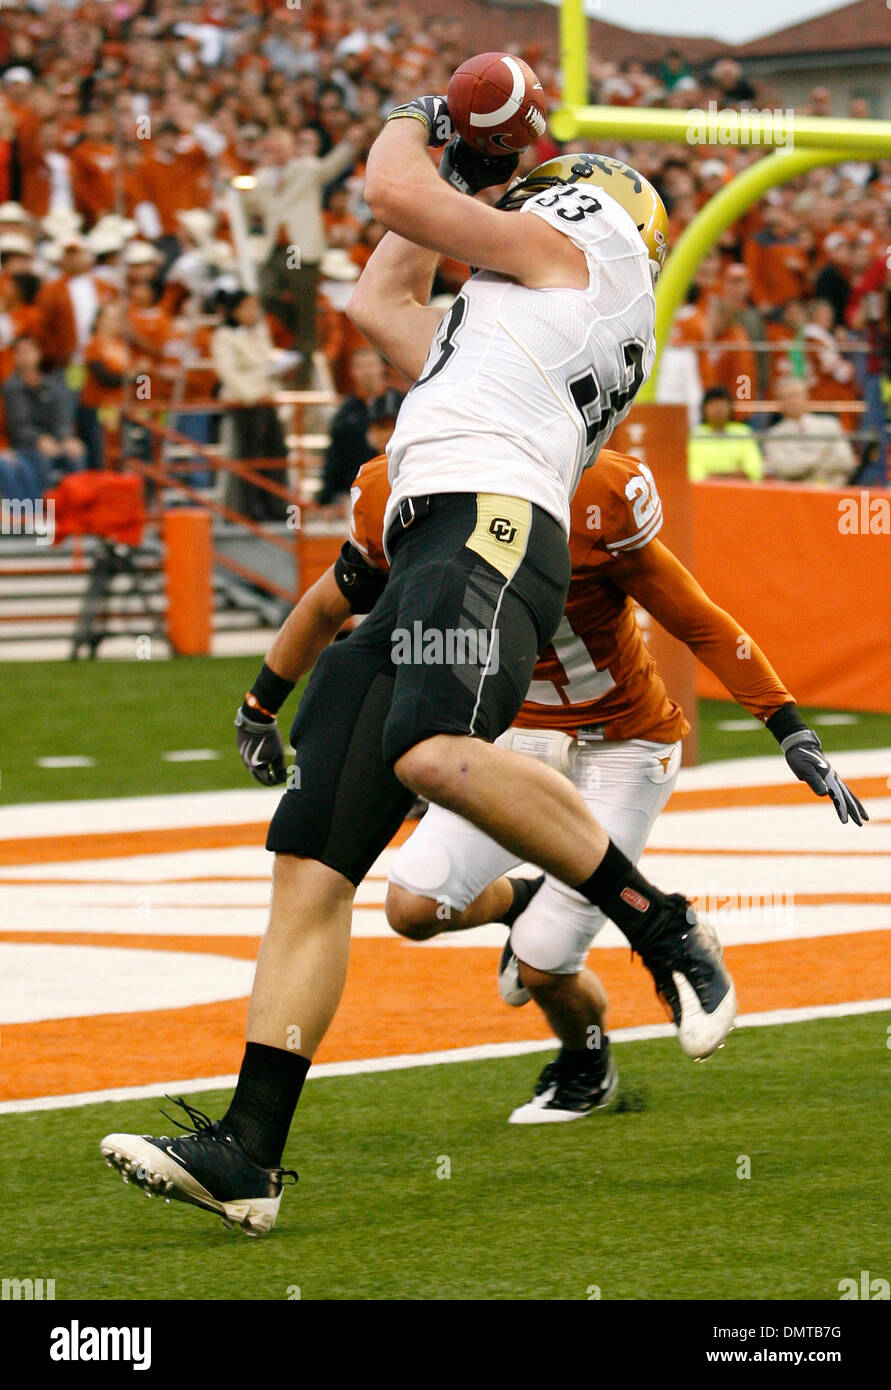 Colorado's Patrick Devenny hauls in a touchdown pass in front of Texas safety Blake Gideon for the first score of the game. (Credit Image: © Joe Nicola/Southcreek Global/ZUMApress.com) - Stock Image